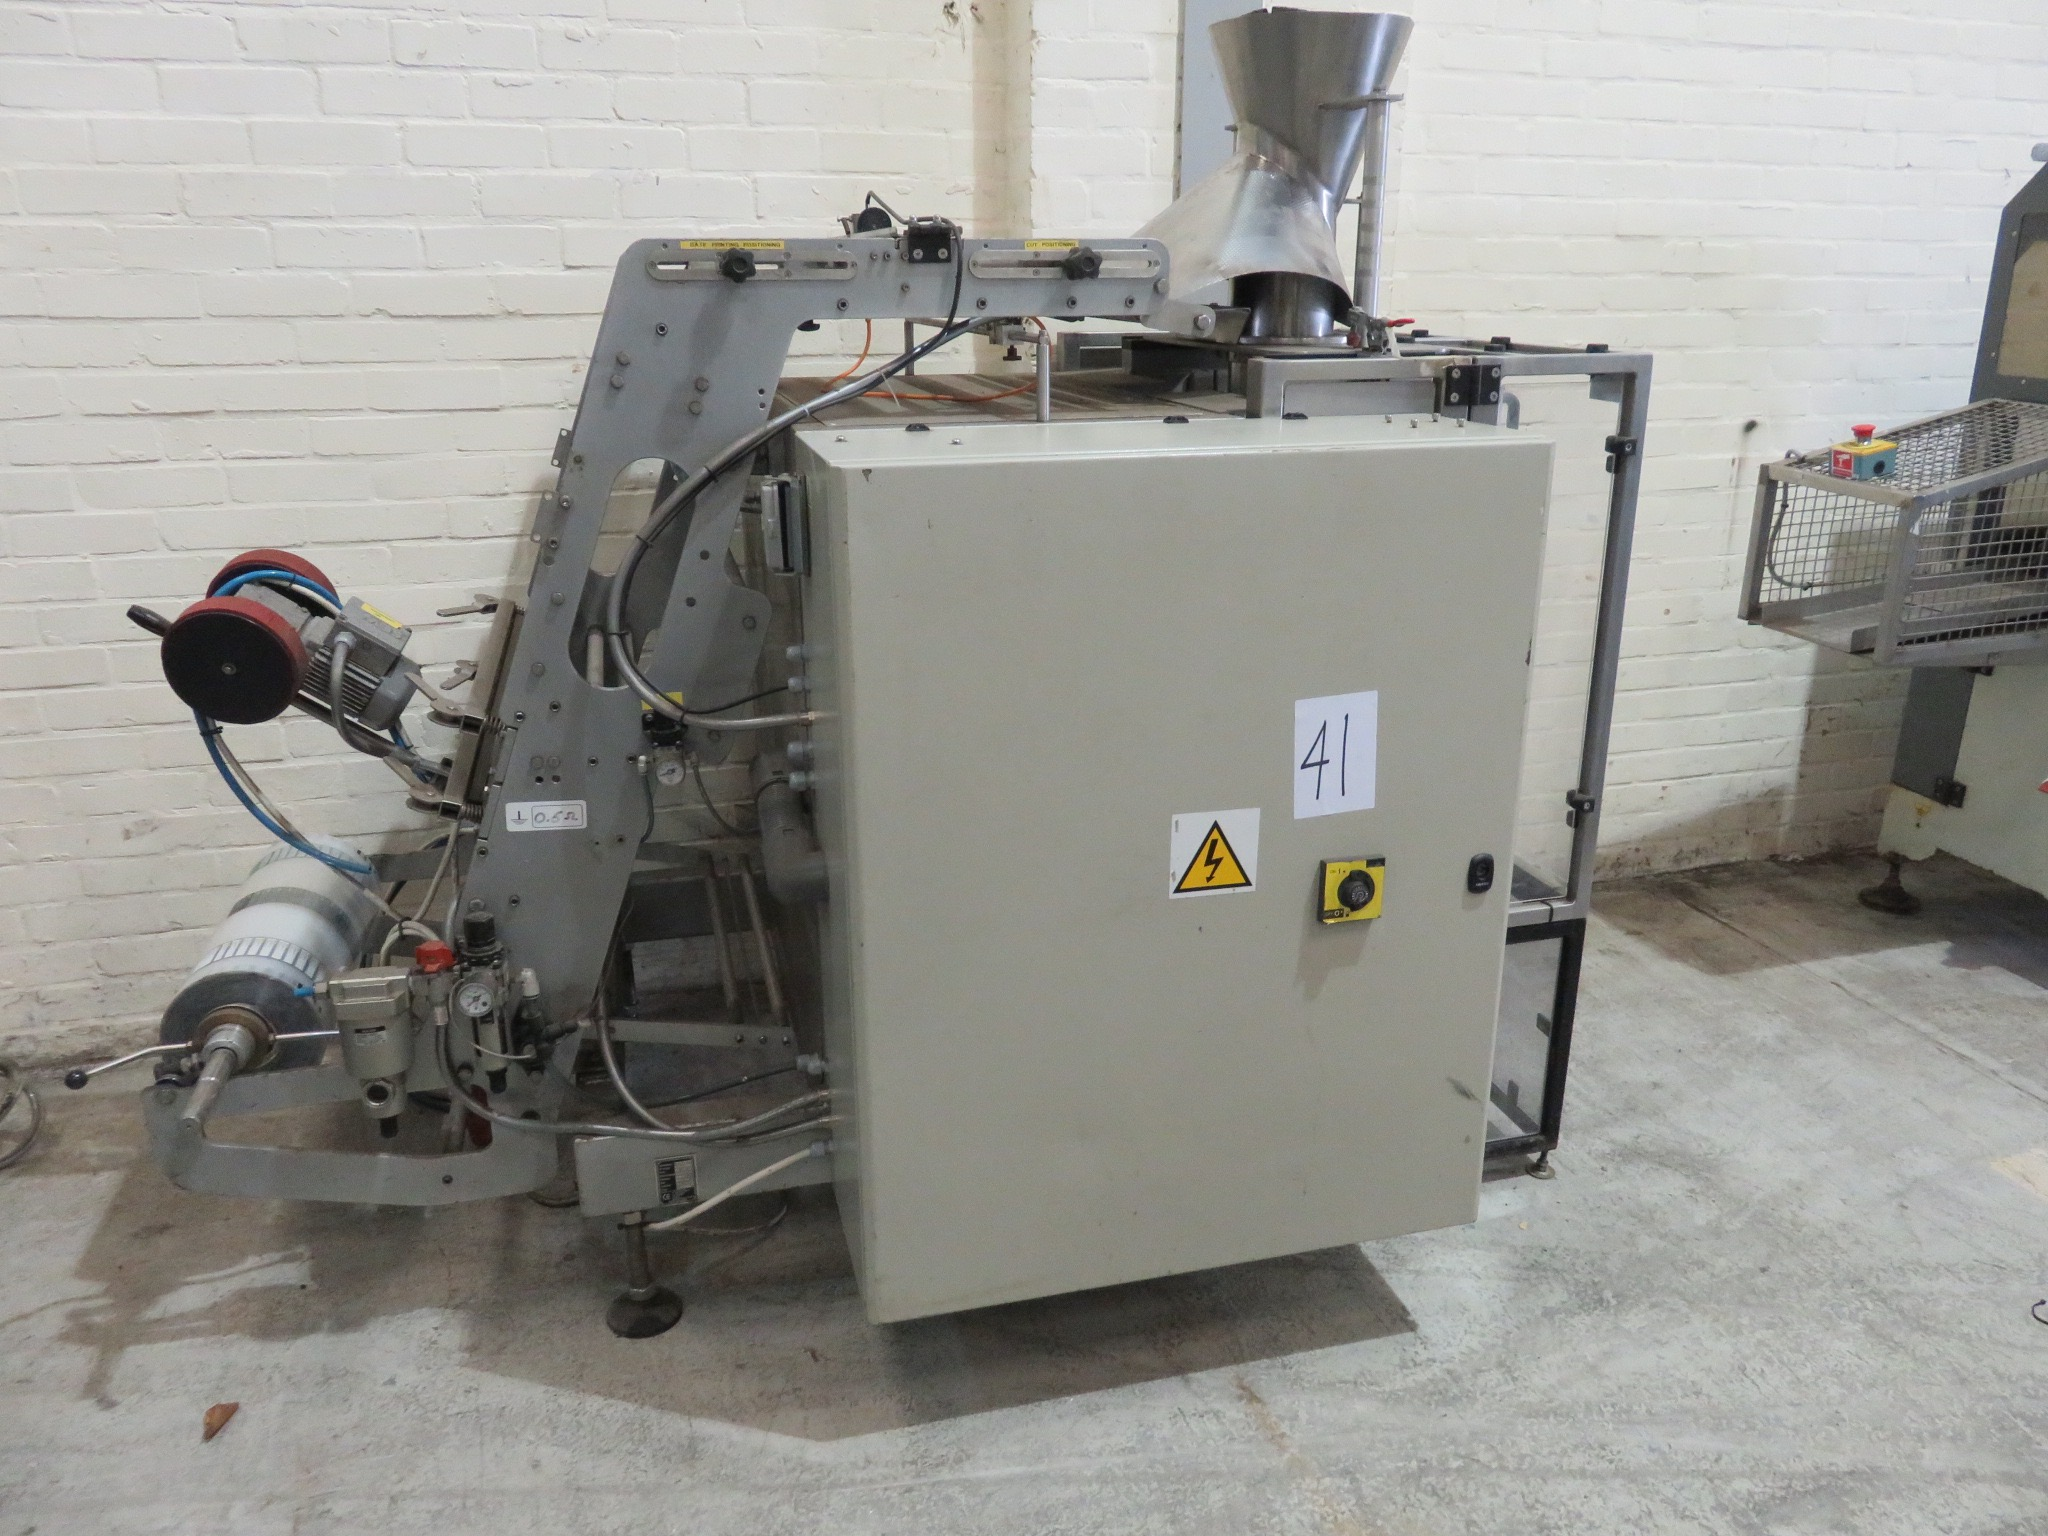 Lot 41 - Radpack vertical form, fill & seal machine. (Act Prepack) PEC. Touch screen. Totally S/sLIFT OUT £30